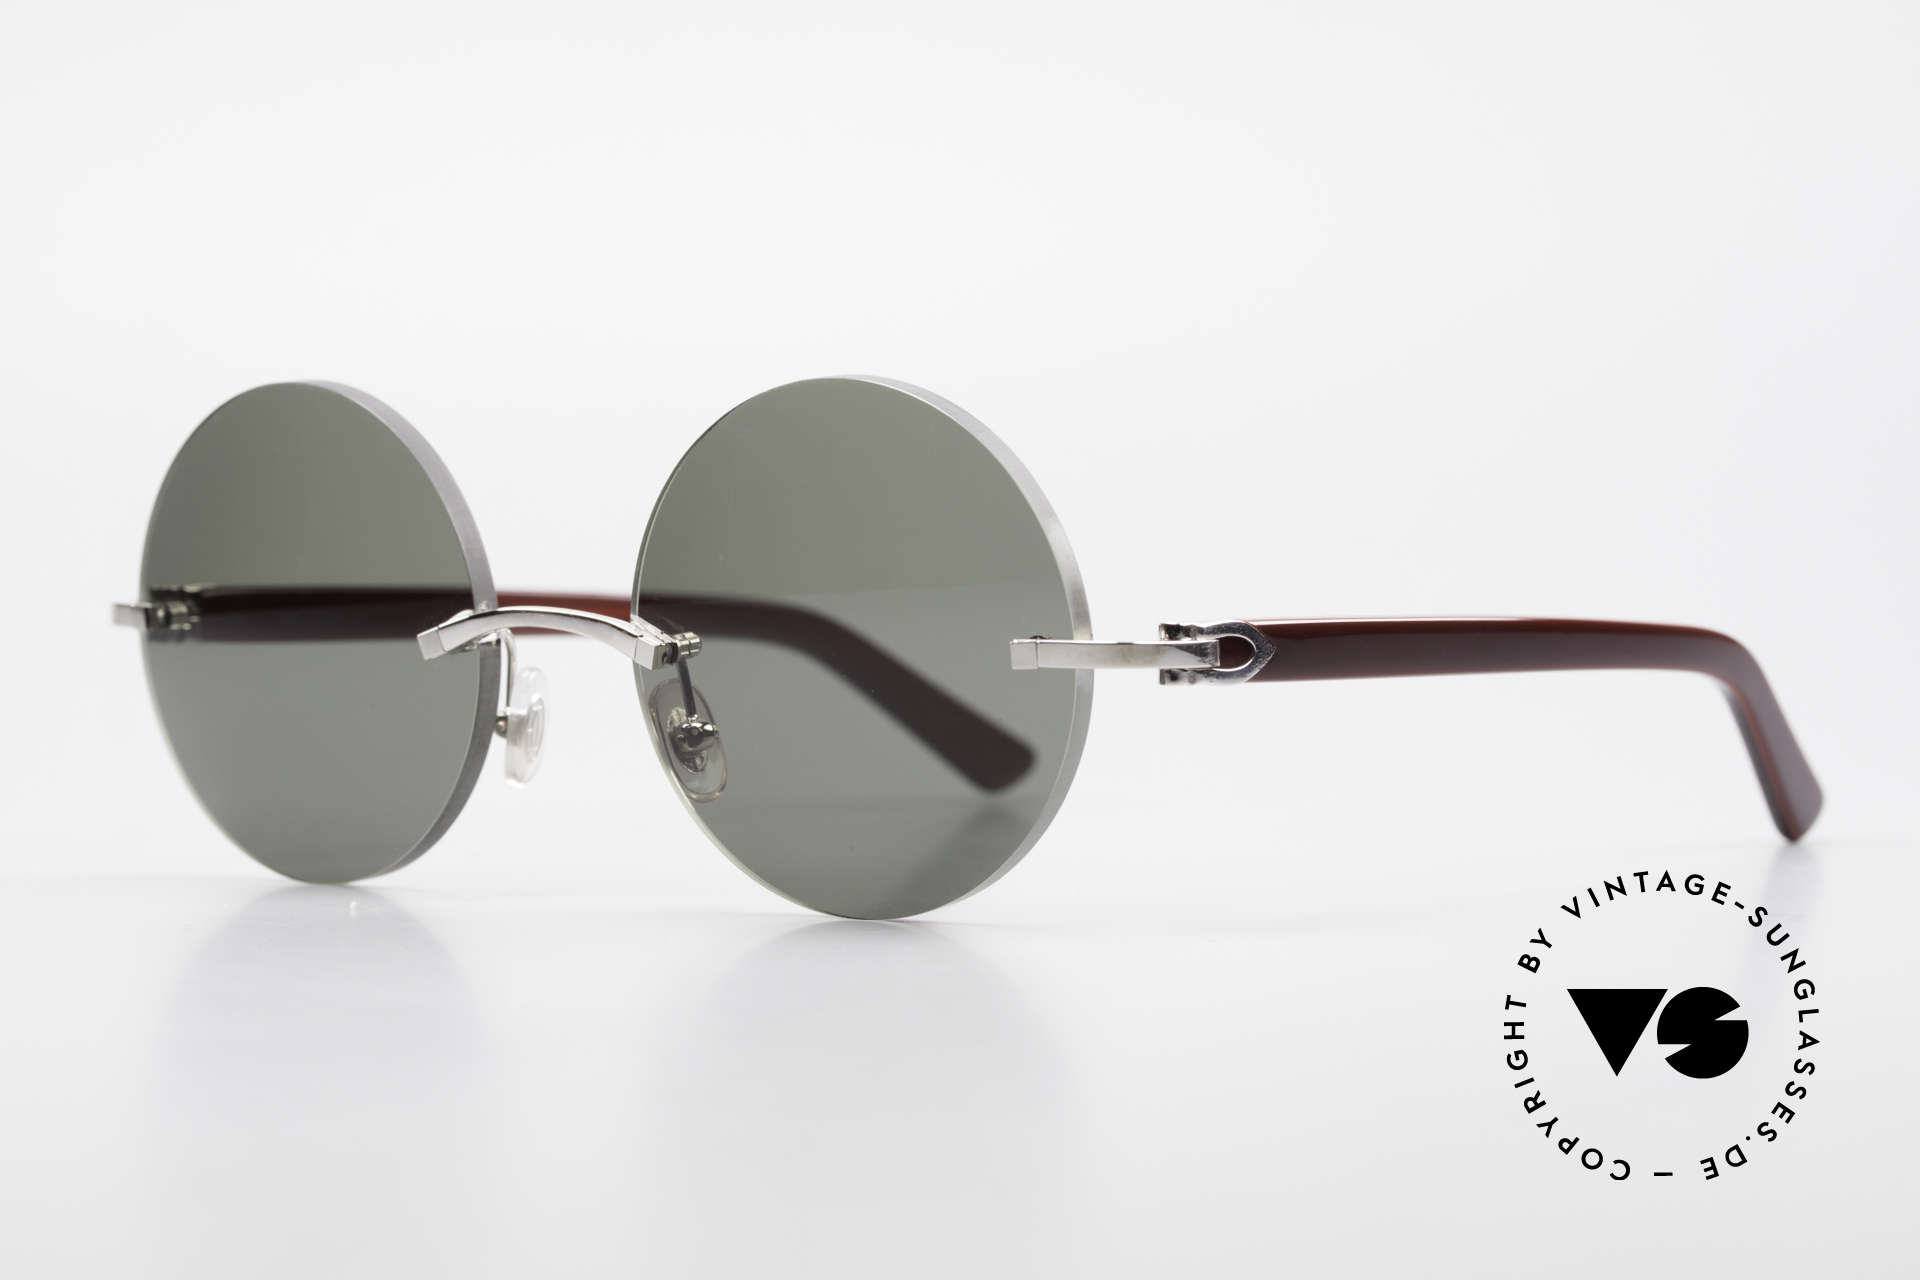 Cartier C-Decor Madison Small Round Luxury Shades, model of the C-Decor Series with new round lenses, Made for Men and Women